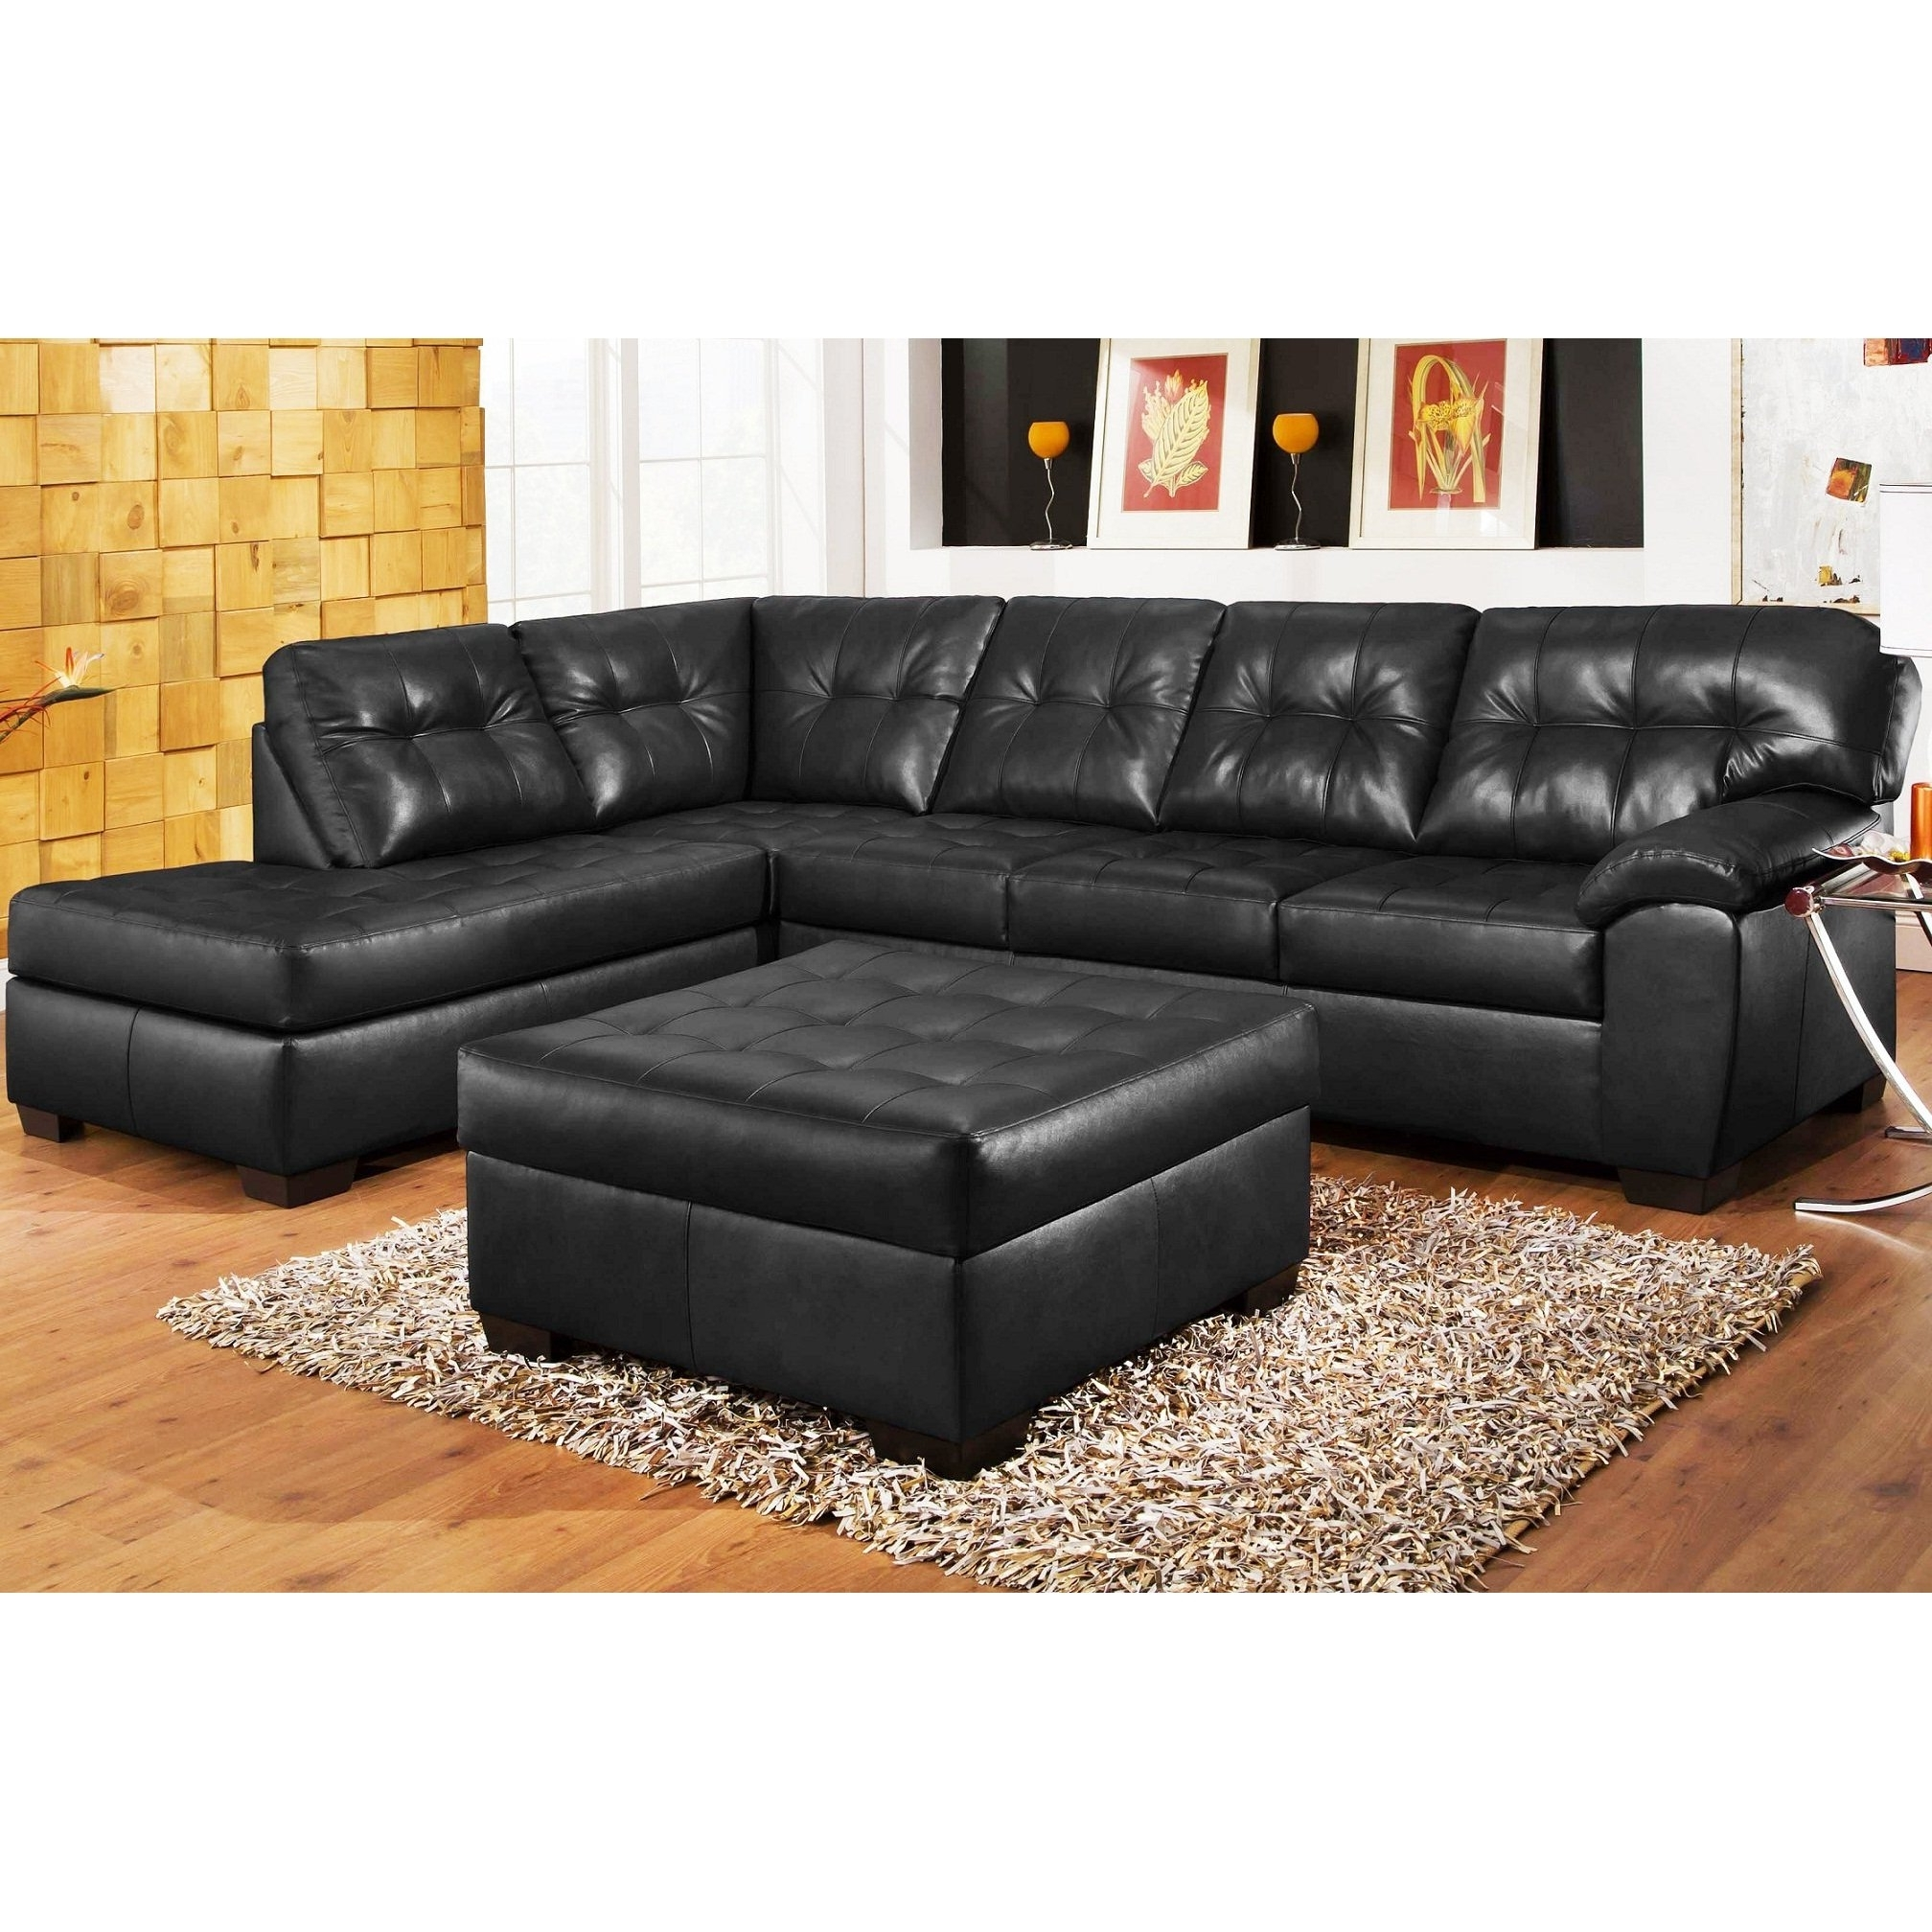 Famous Black Leather Sectionals With Ottoman Throughout 3Pc Black Leather Sectional Sofa , Chaise , Ottoman Set (View 11 of 15)